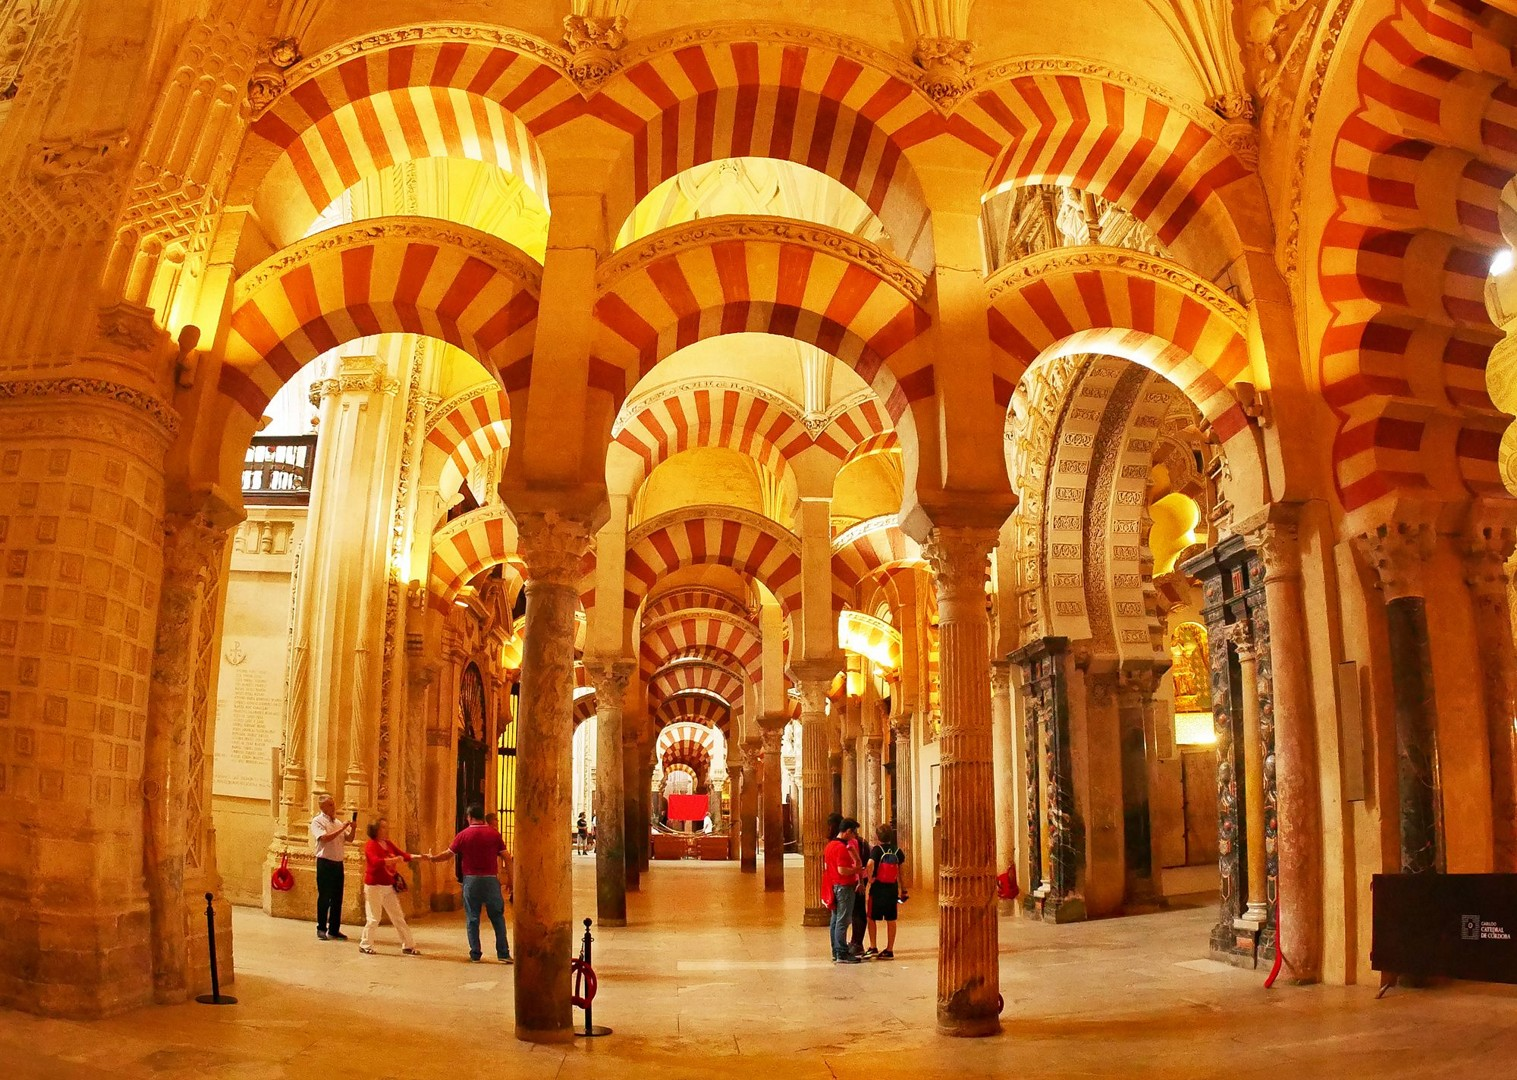 mezquita-cycling-holiday-in-spain-granada-to-seville-leisure-cycling.jpg - Southern Spain - Granada to Seville - Self-Guided Leisure Cycling Holiday - Leisure Cycling